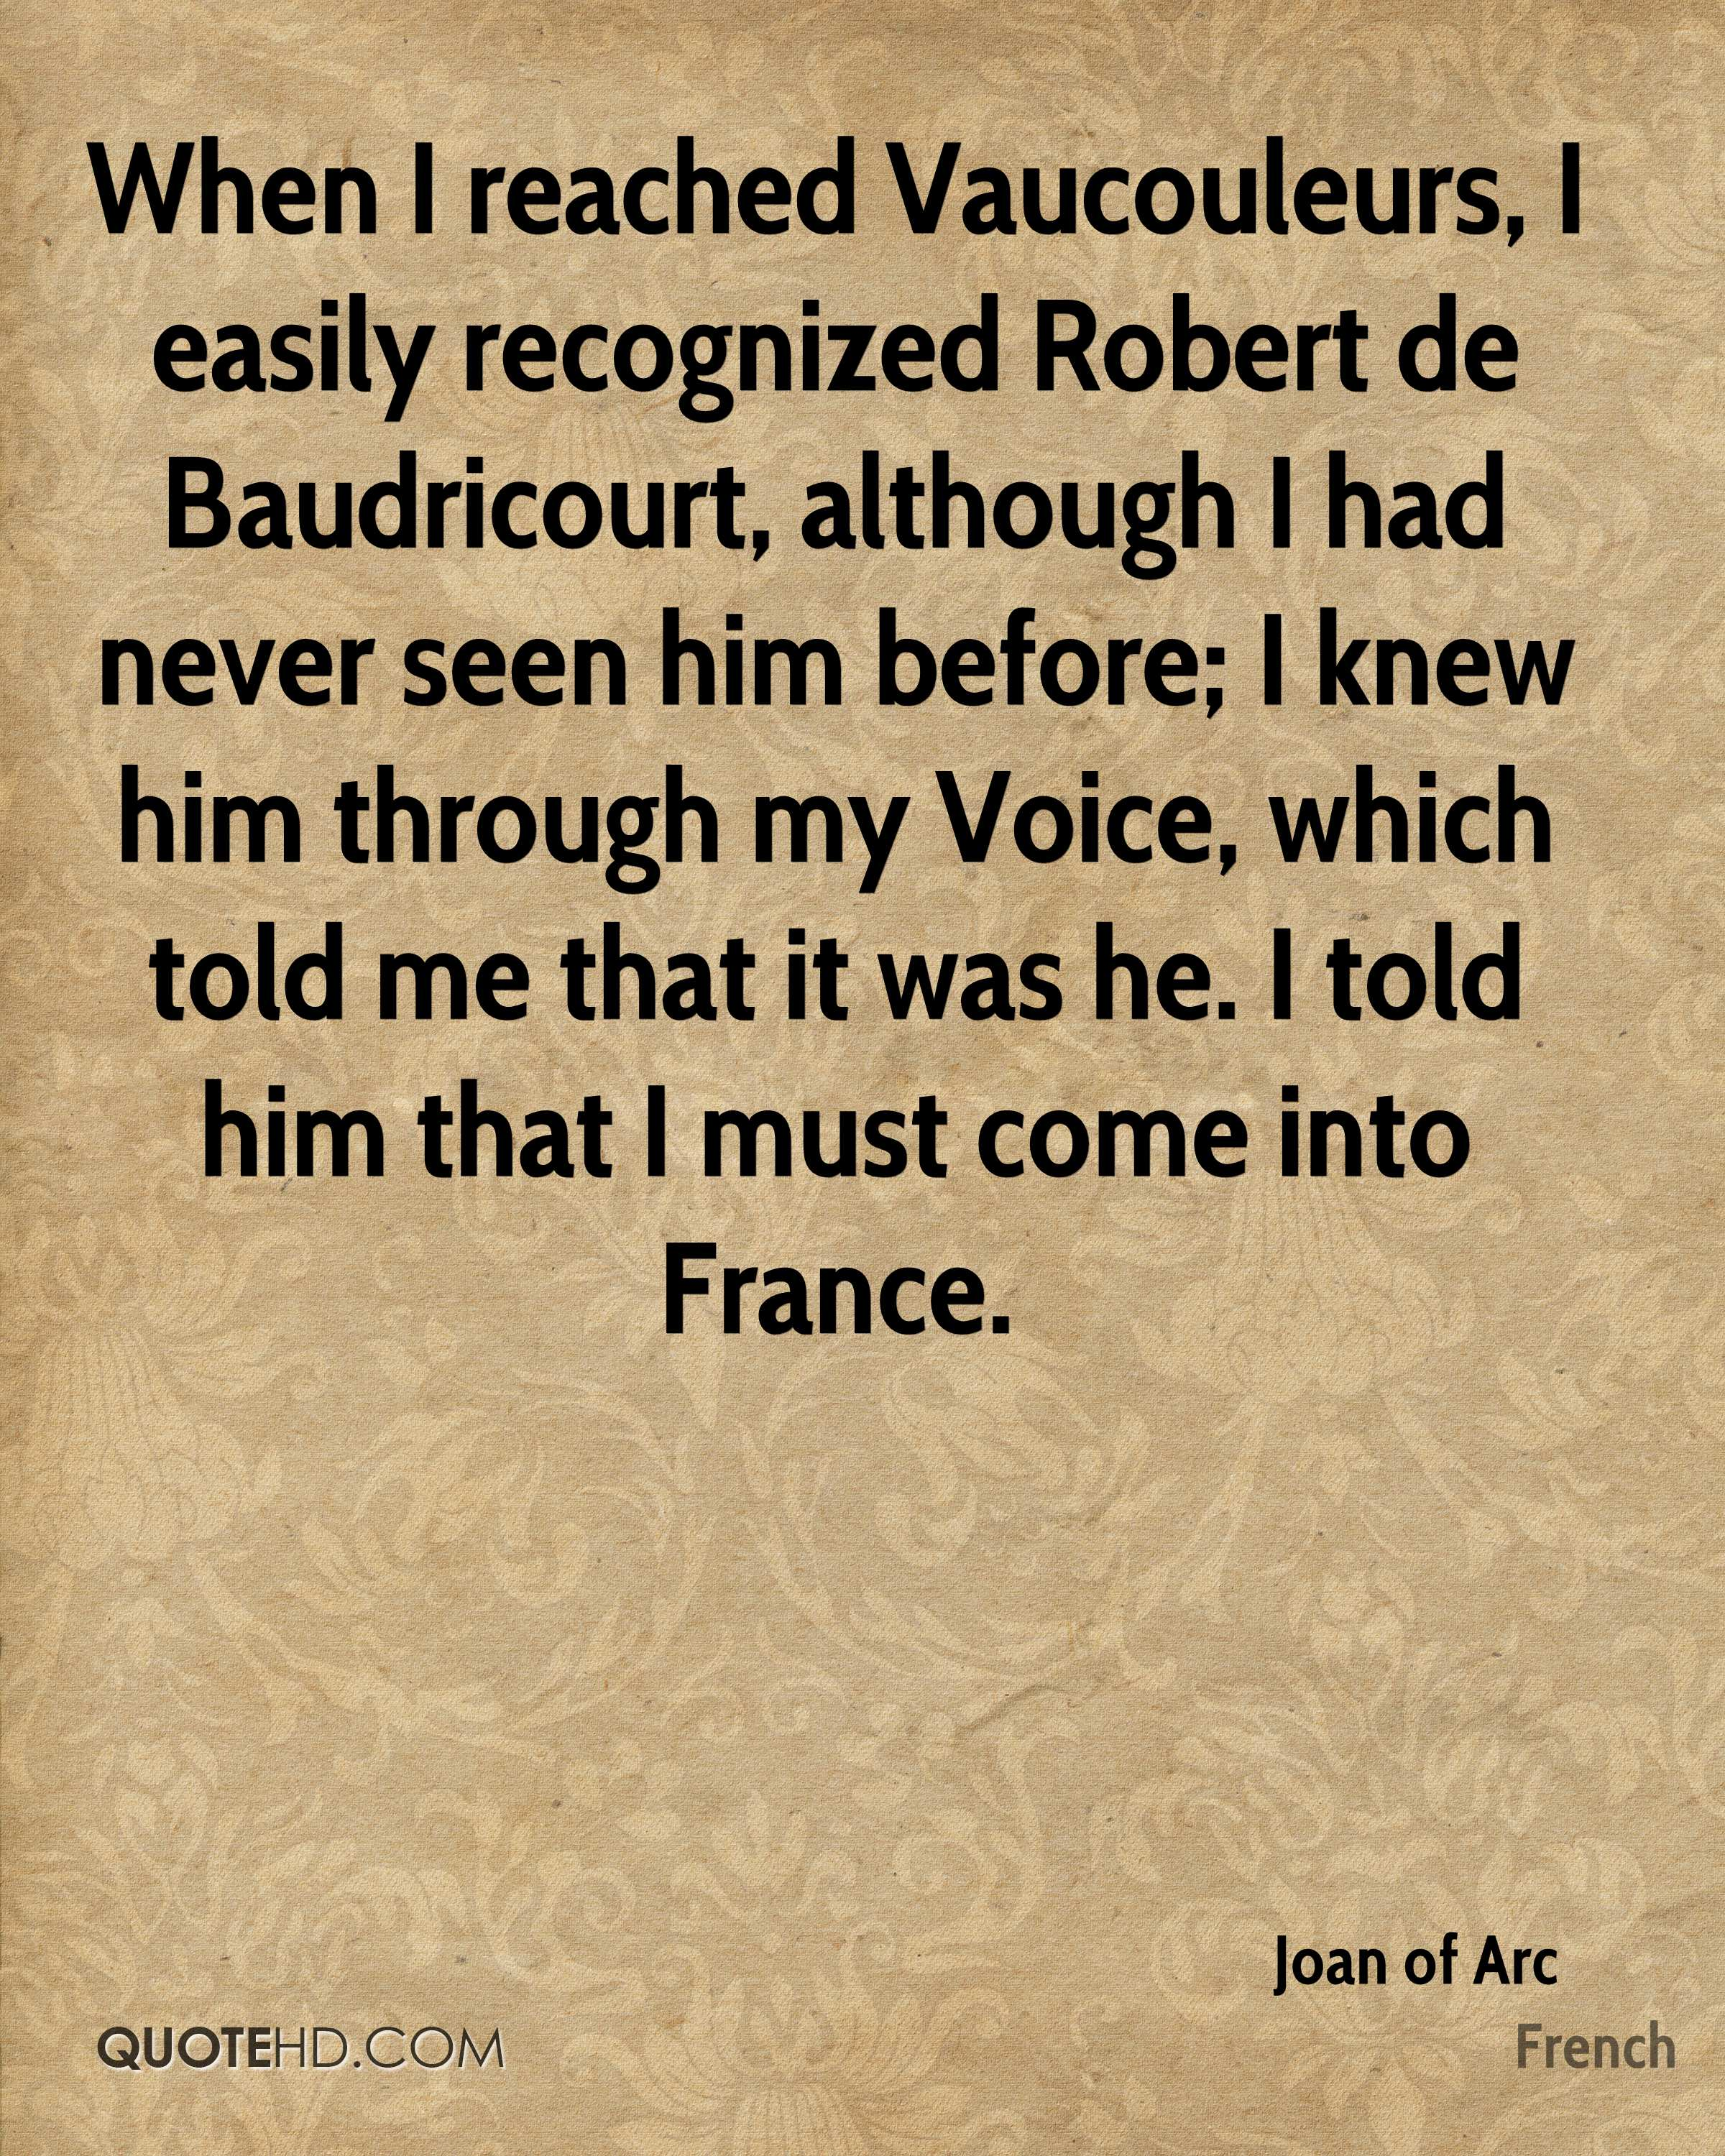 When I reached Vaucouleurs, I easily recognized Robert de Baudricourt, although I had never seen him before; I knew him through my Voice, which told me that it was he. I told him that I must come into France.